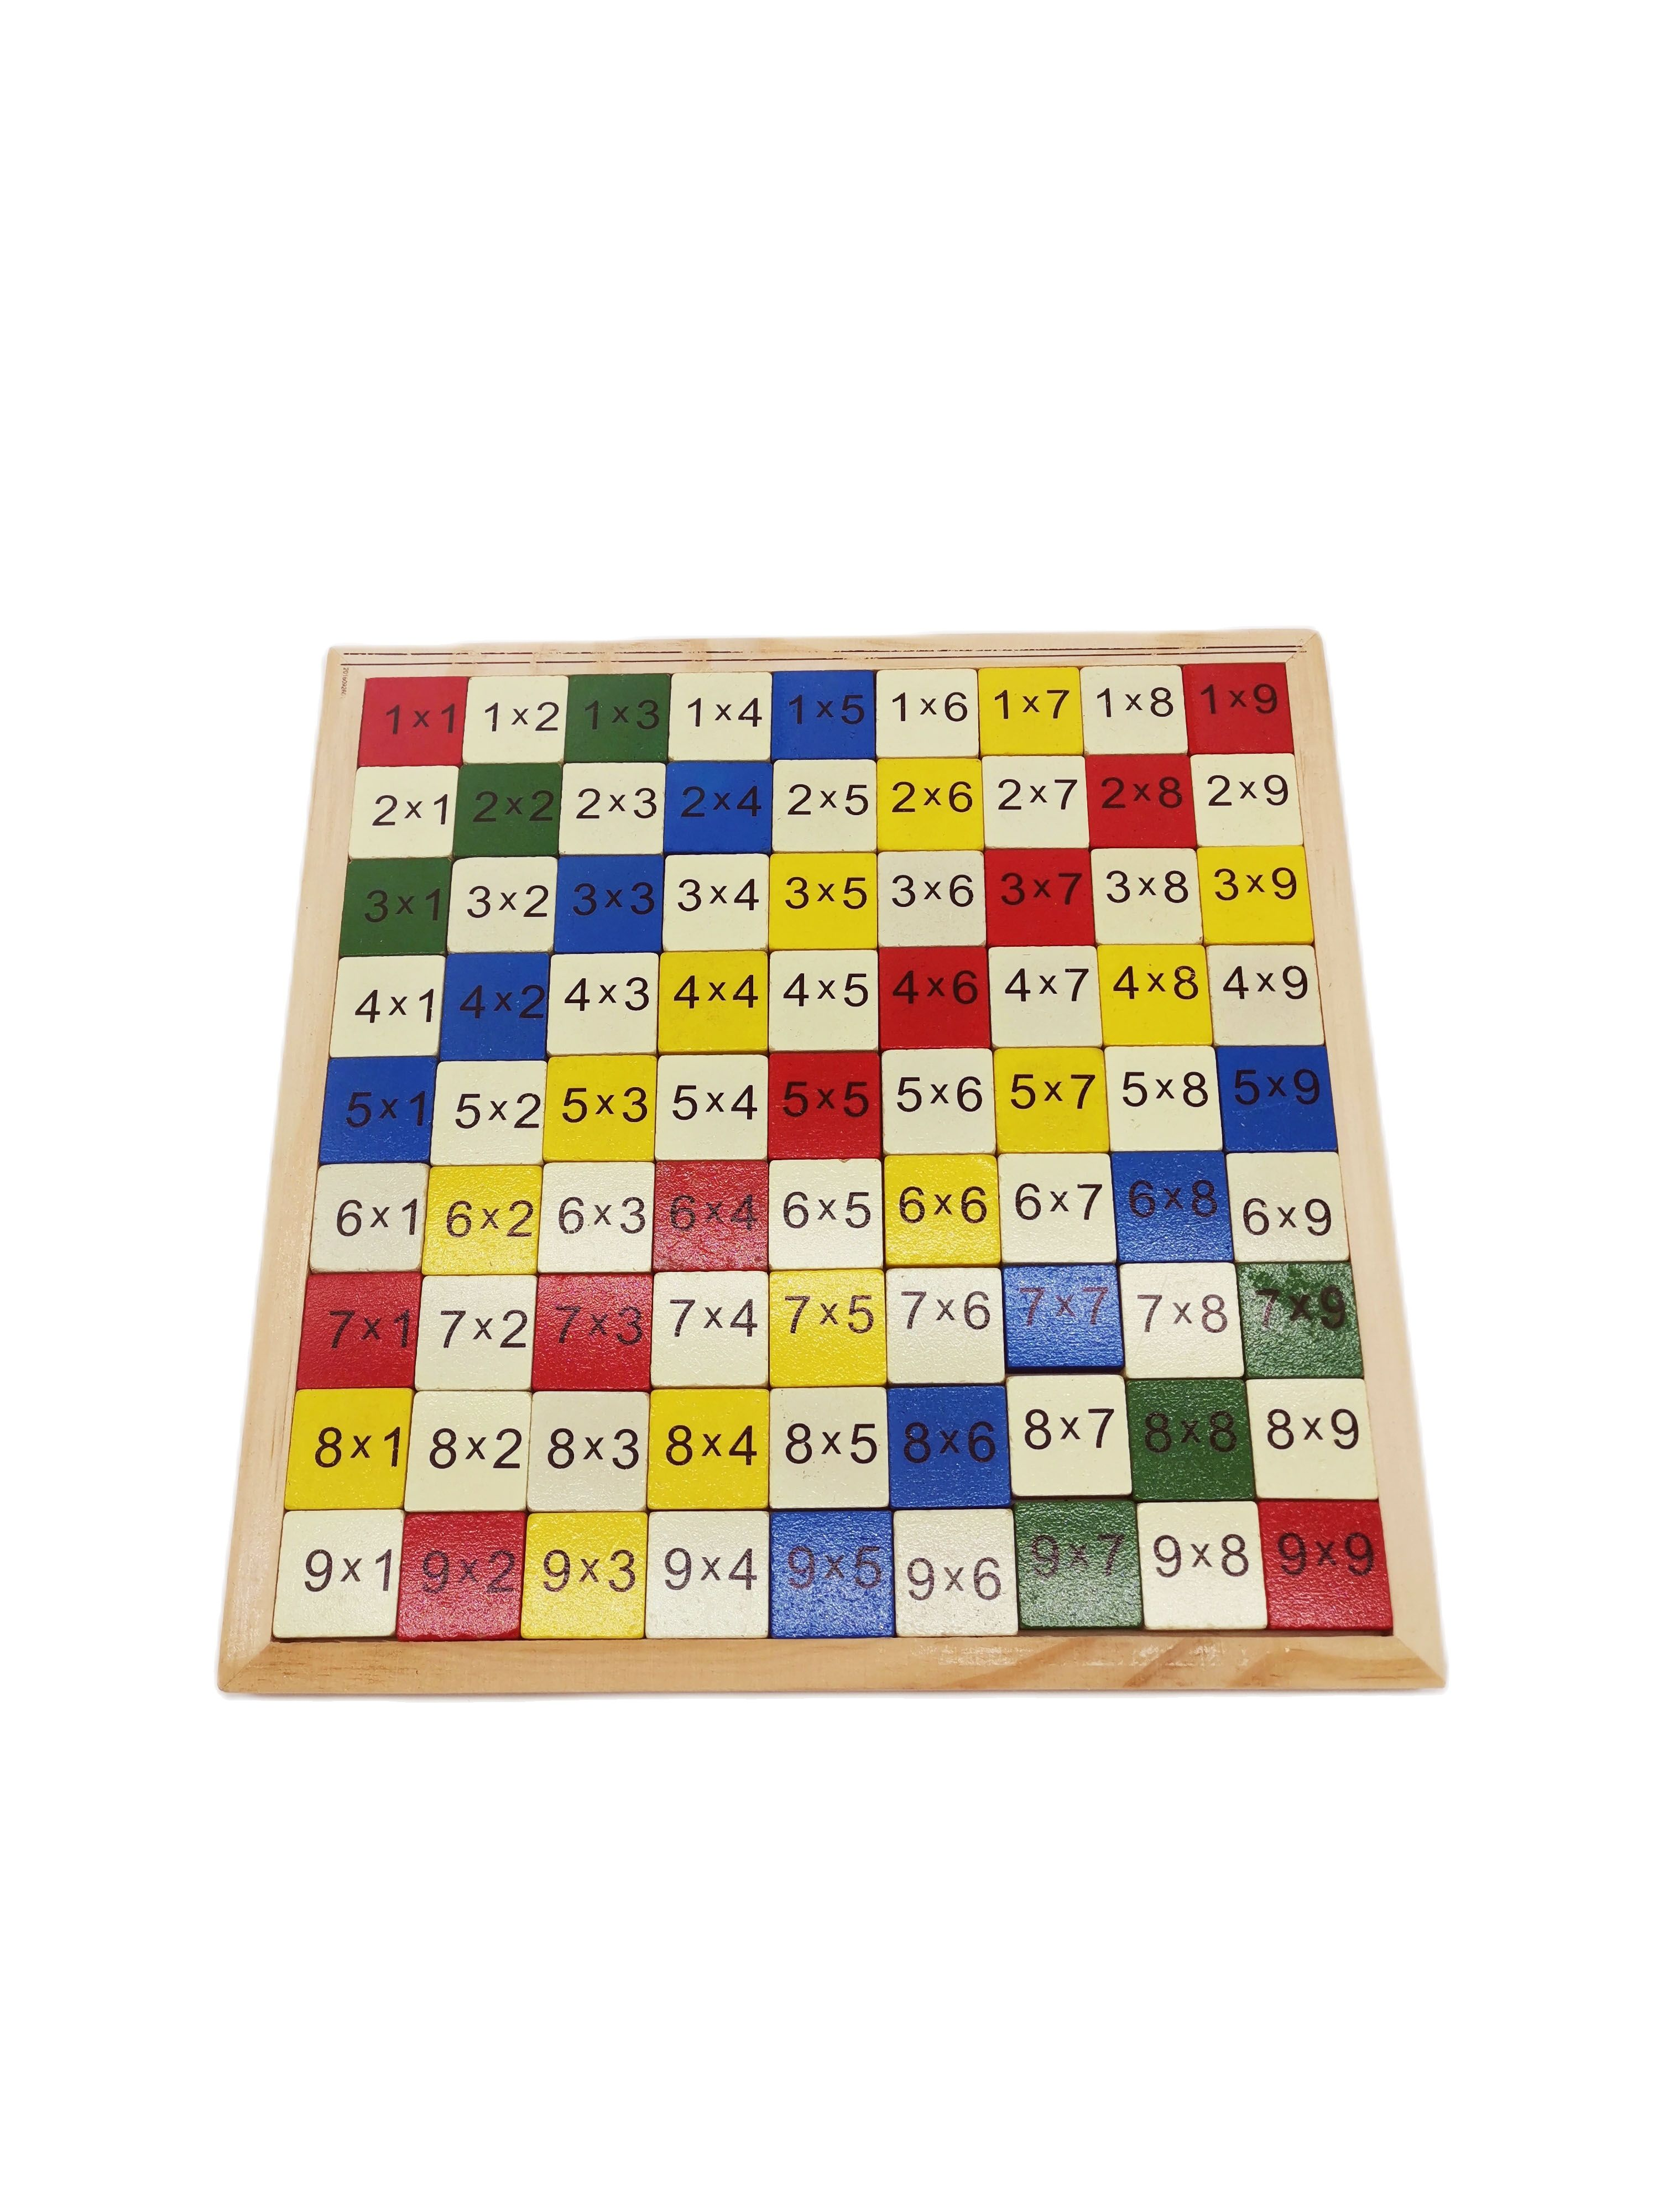 9X9 Multiplication Table Math Toys Wooden Montessori Early Educational Mathematical Arithmetic Teaching Aids For Children Baby